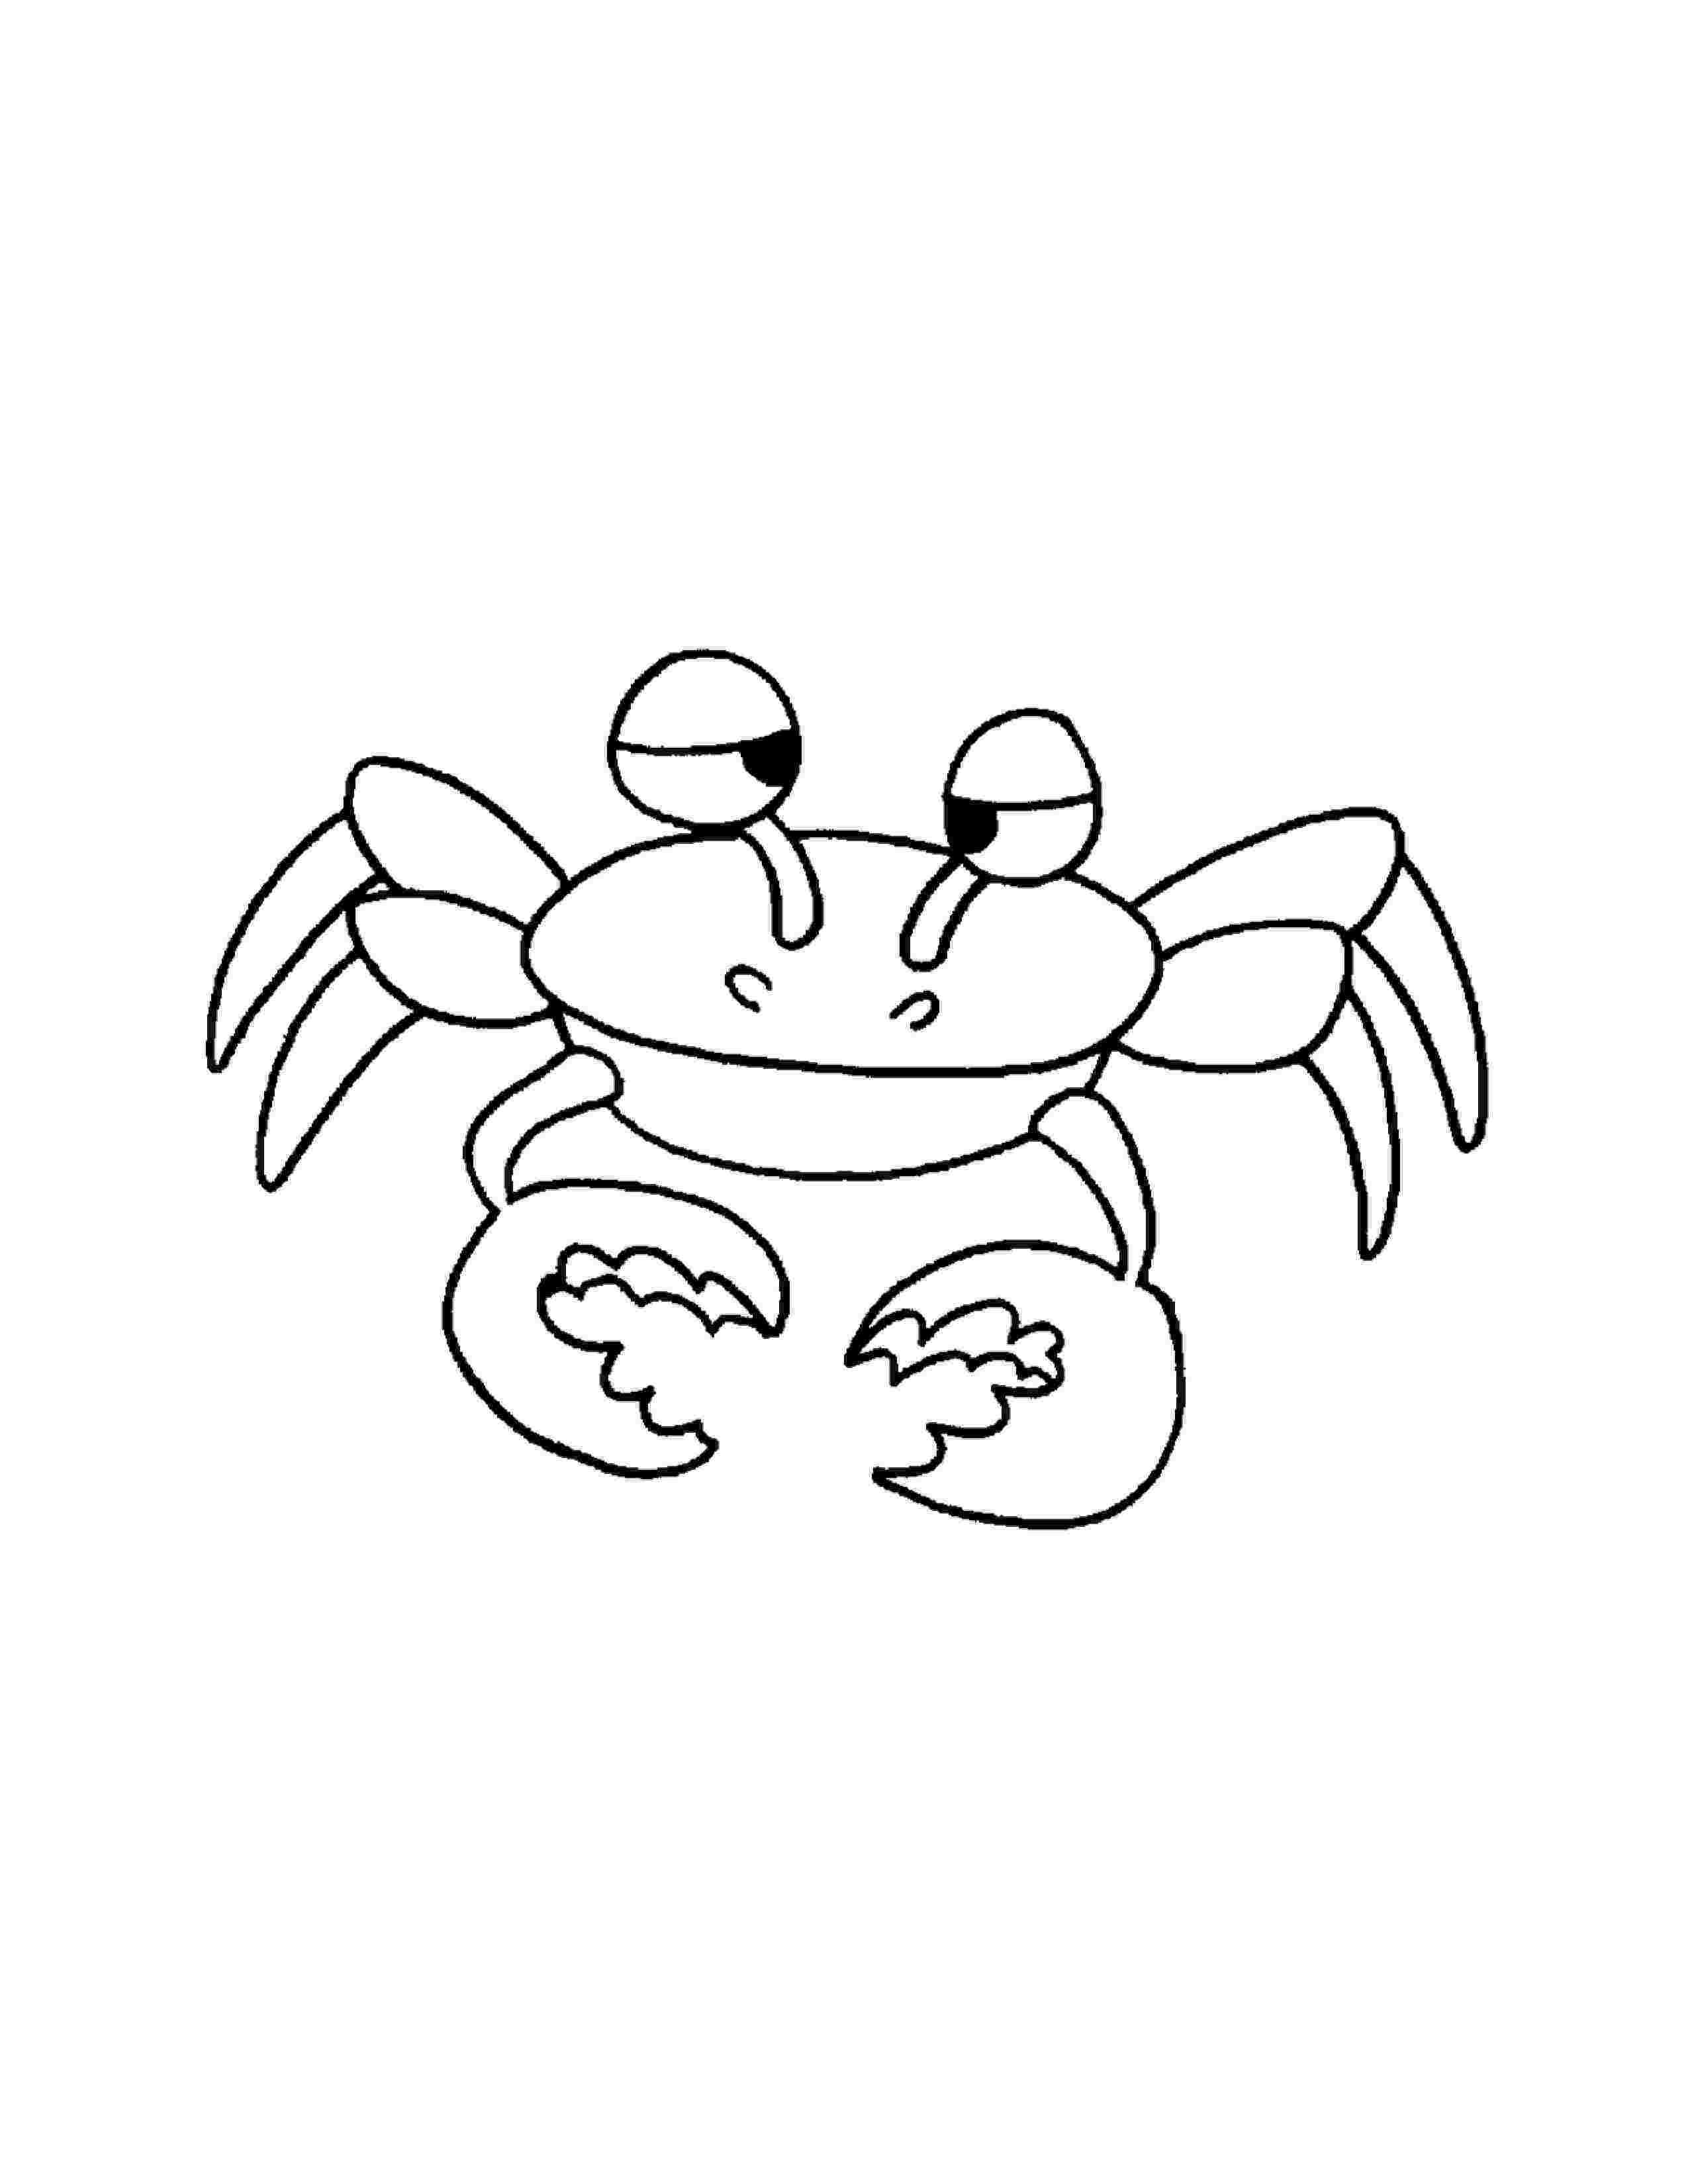 sea life animals coloring pages animal coloring pages best coloring pages for kids animals pages sea coloring life